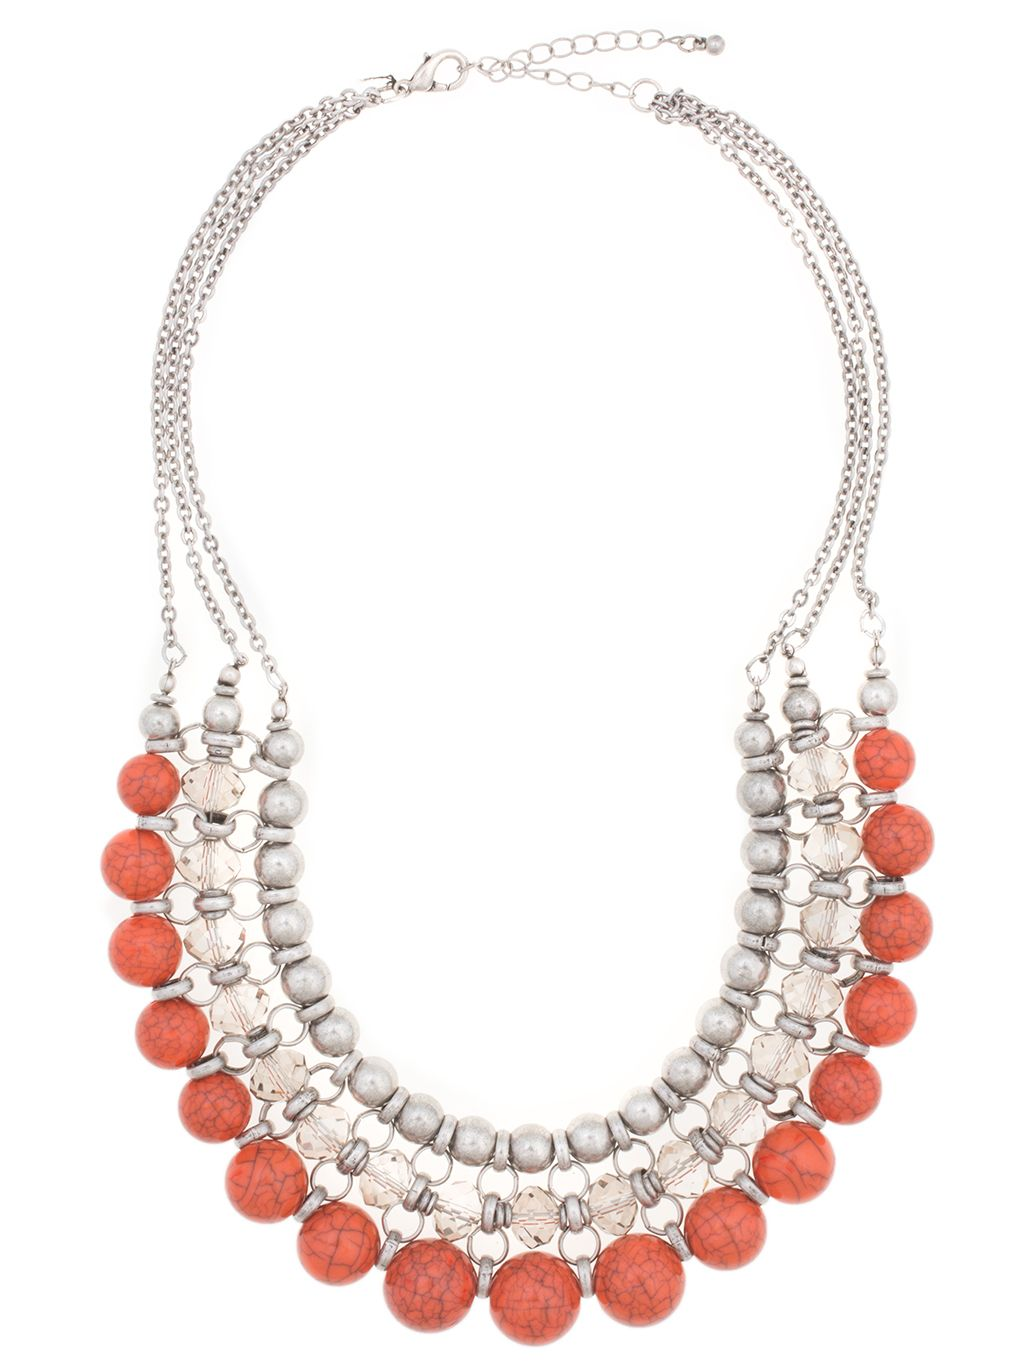 Sphere Statement Necklace | Women's Plus Size Jewelry